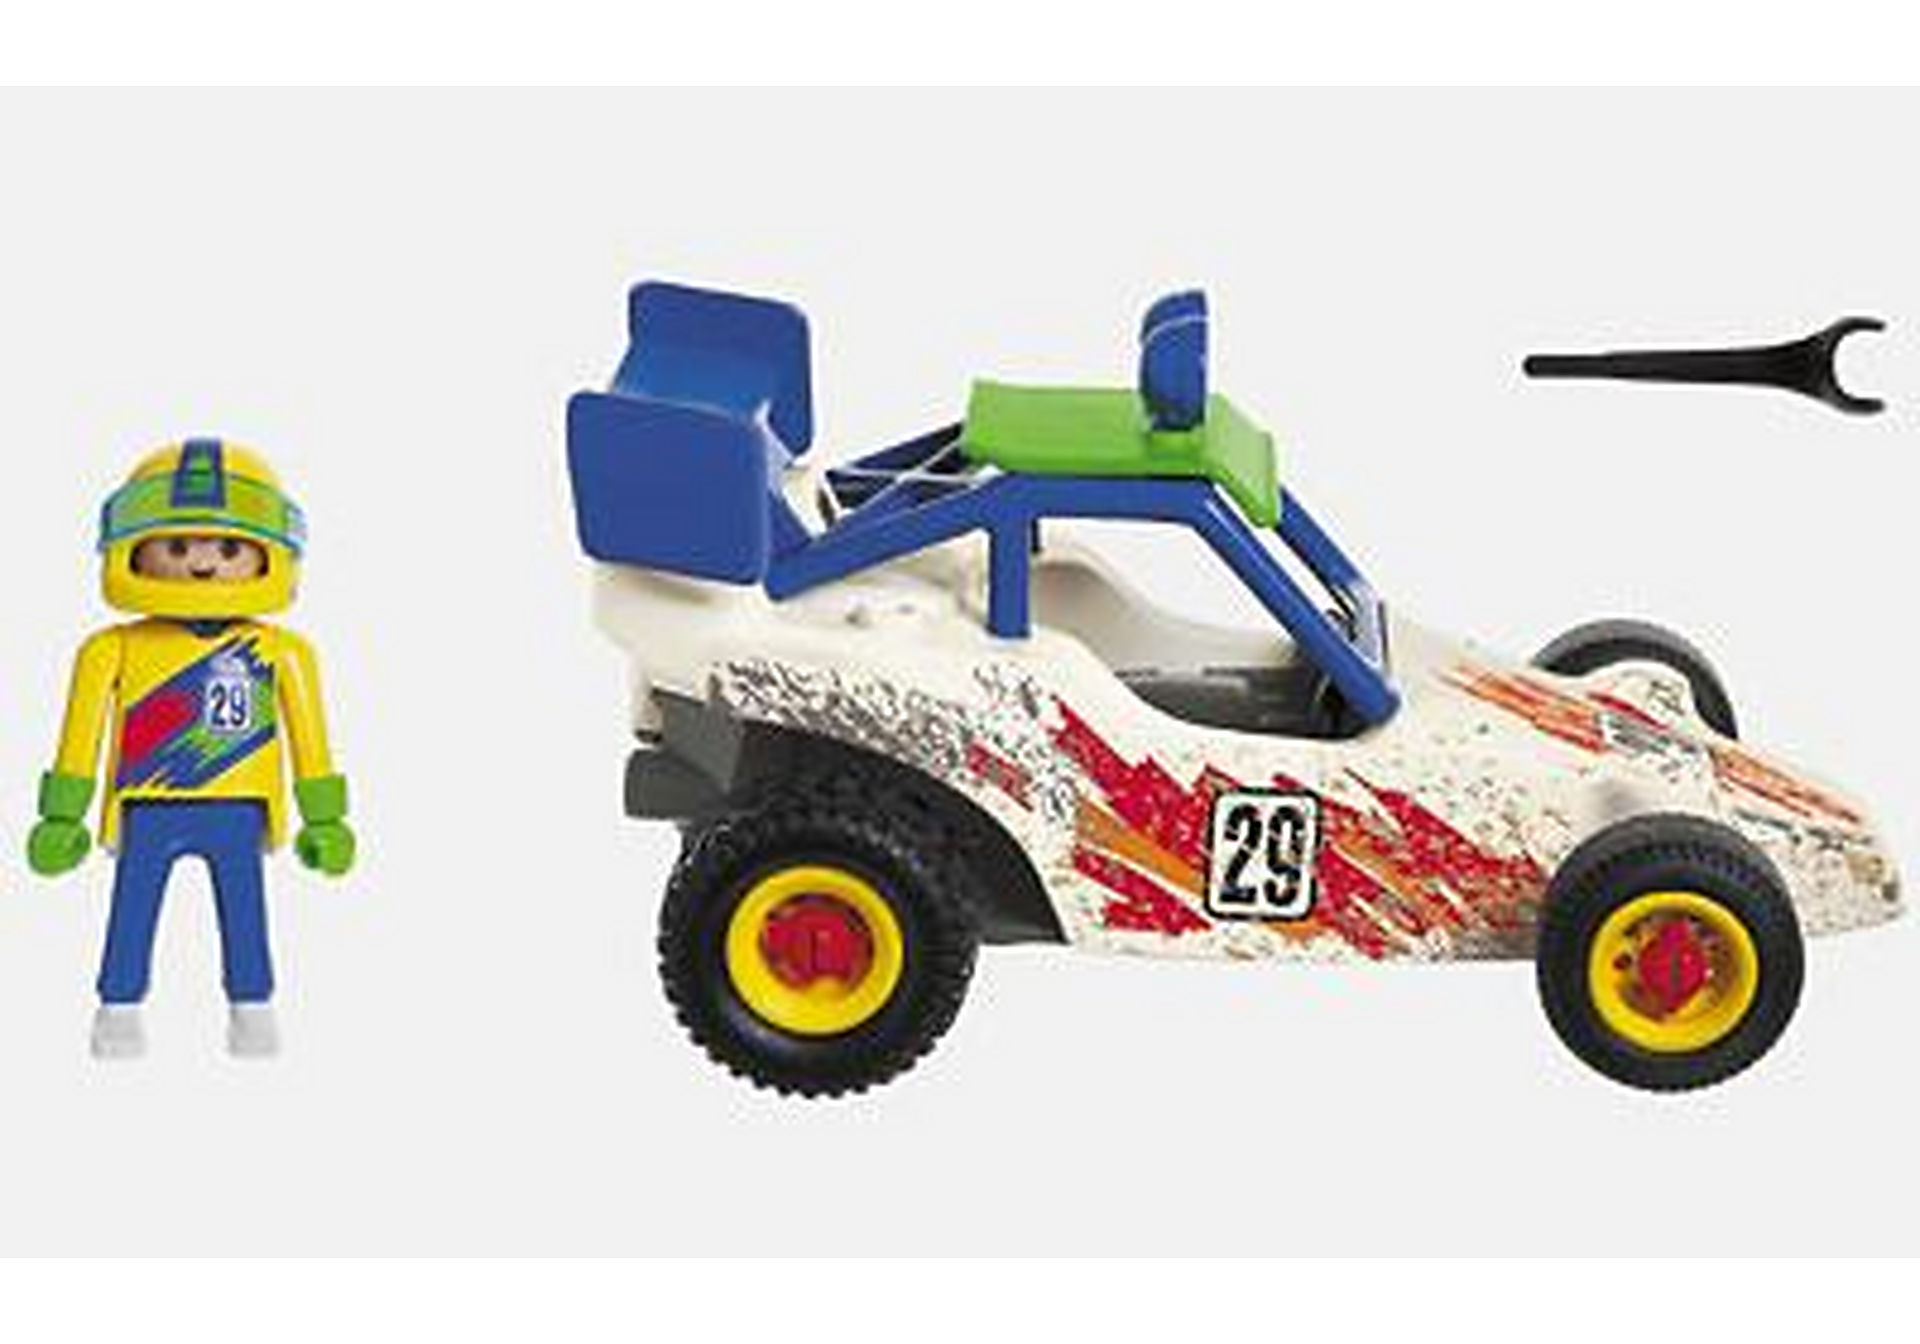 3043-A Offroad Racer zoom image2